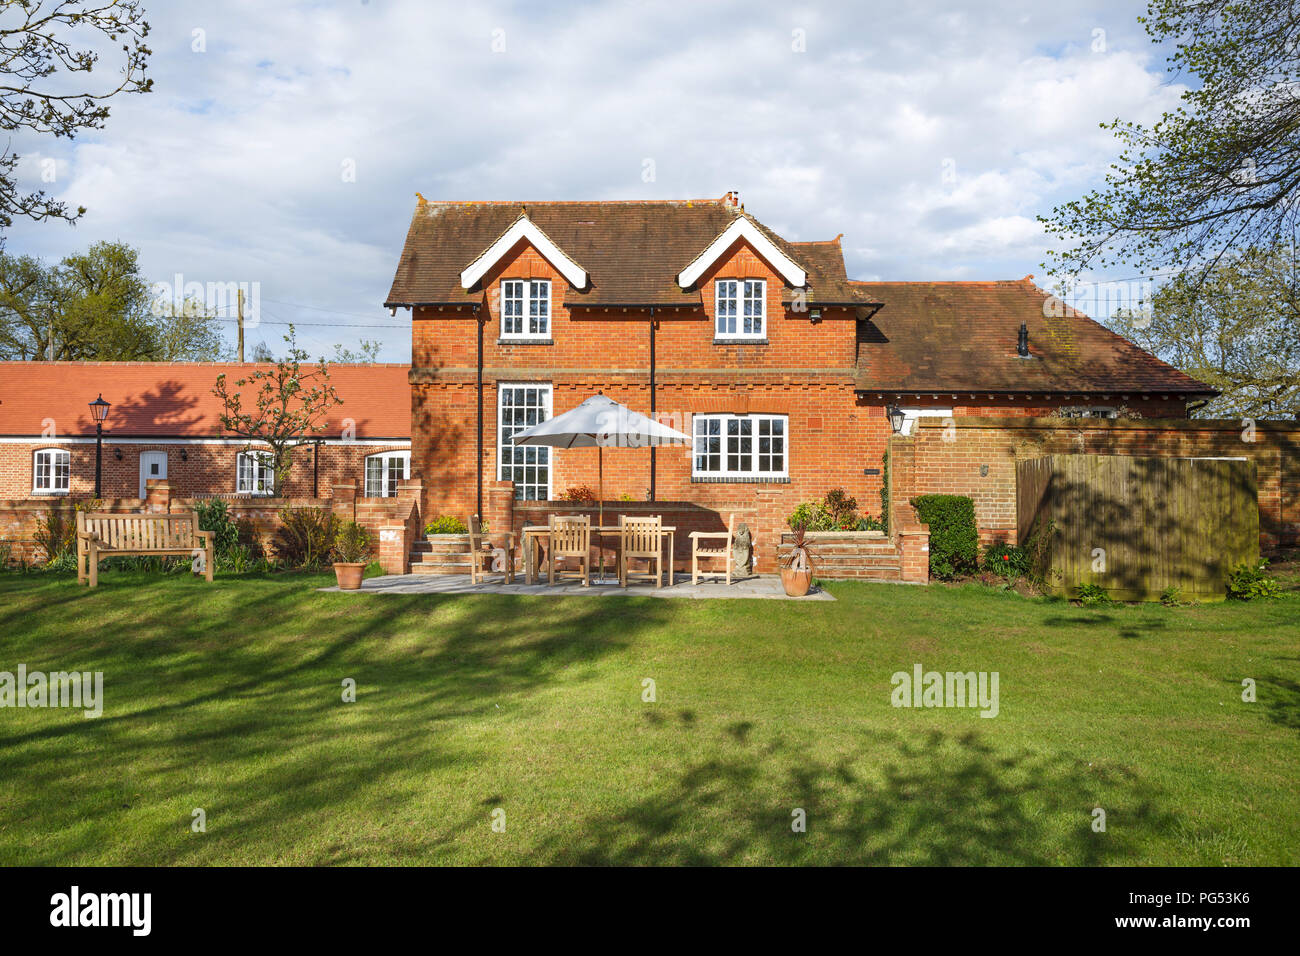 Victorian coach house and stables with garden and patio. The historic building has been converted into a modern family home - Stock Image